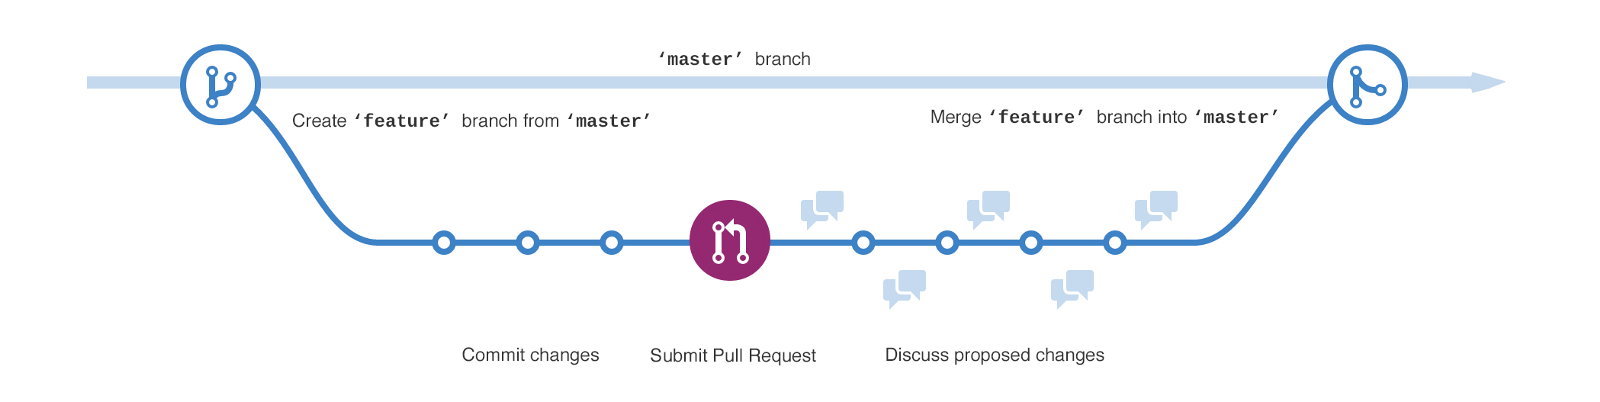 15 Tips to Enhance your Github Flow - By